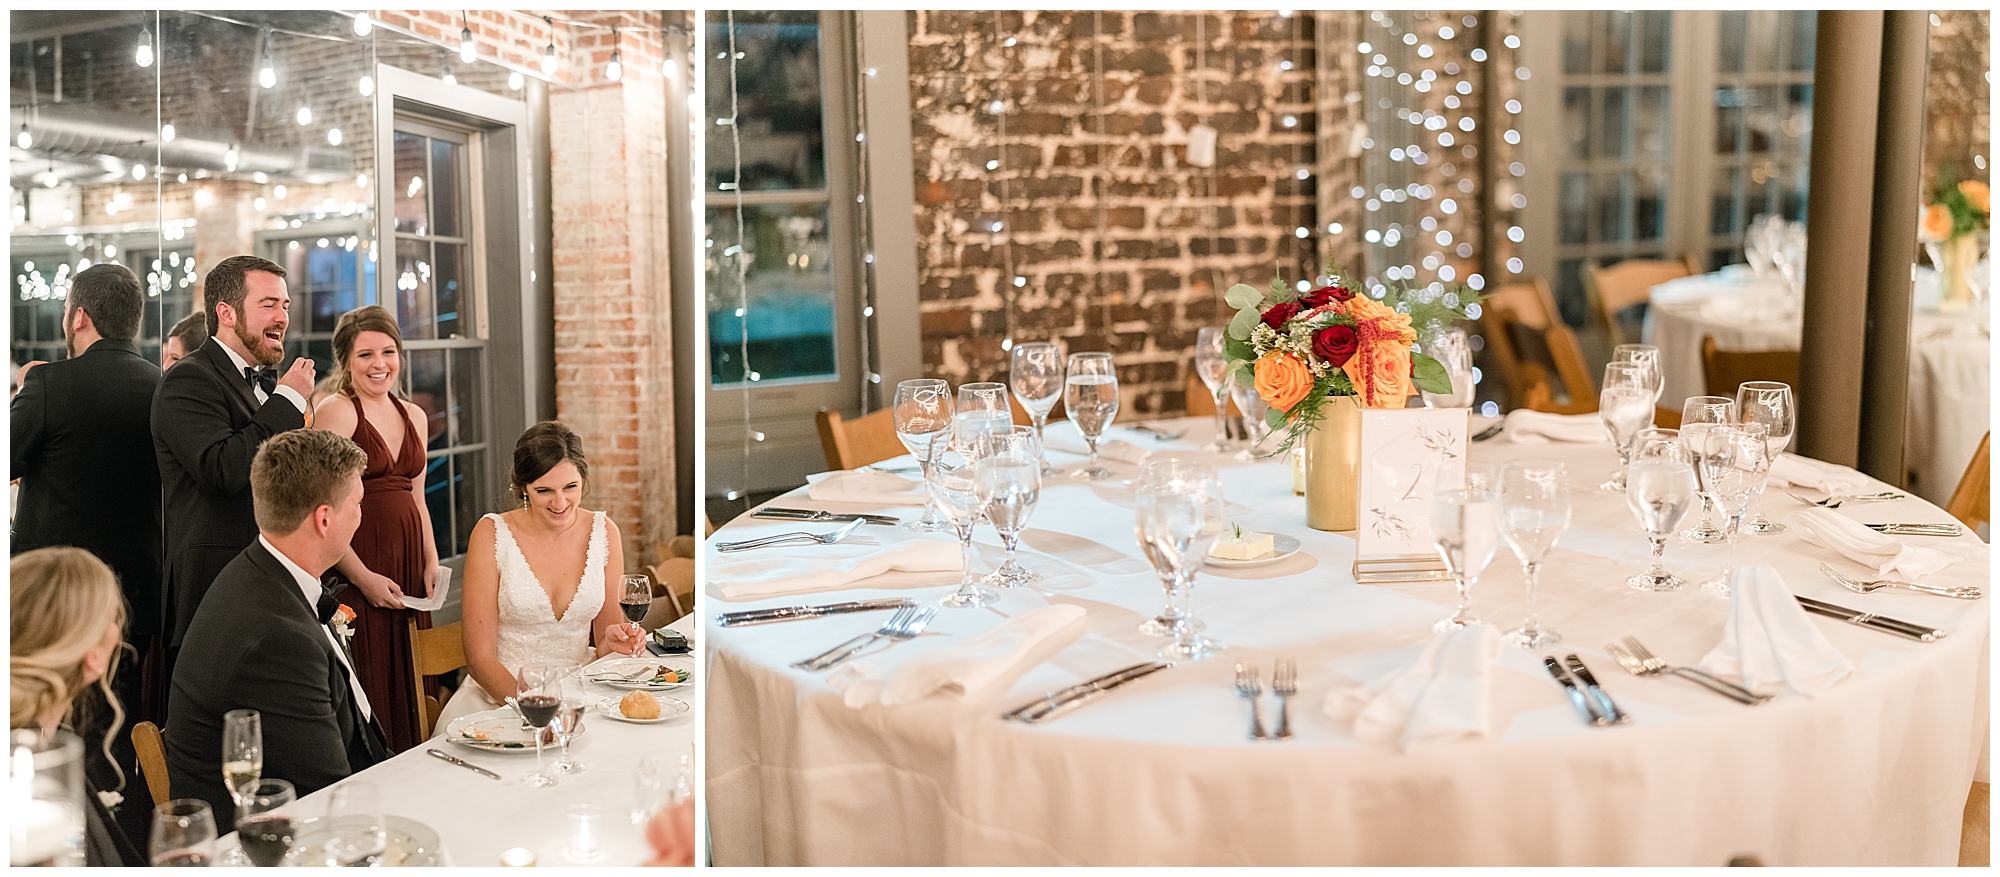 In one photo, a best man and maid of honor give a speech. In the second photo, a table is laid out with a white tablecloth during a Washington DC wedding.